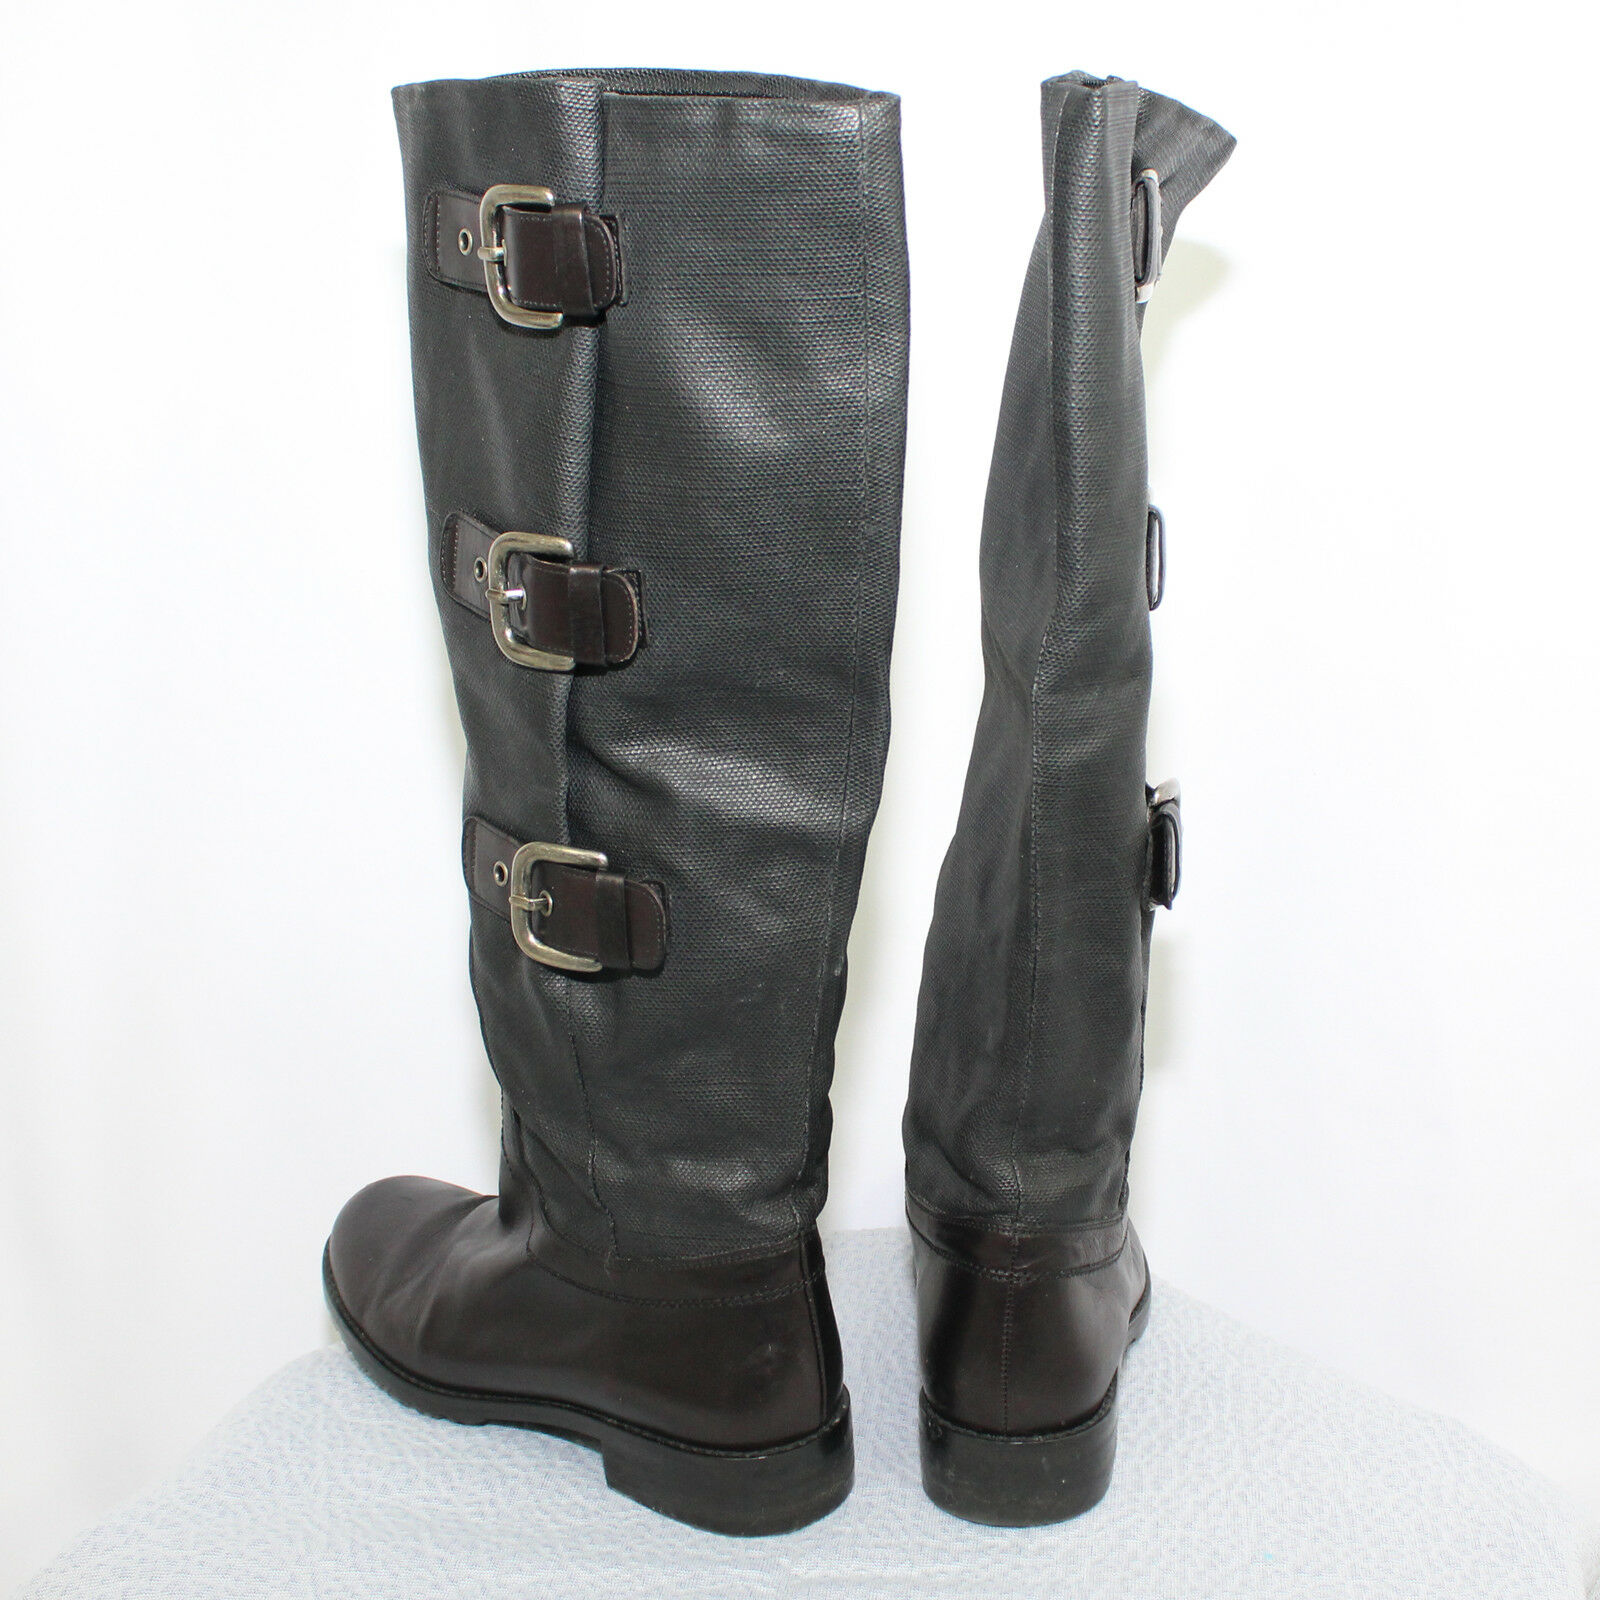 STUART WEITZMAN Tall Leather Coated Canvas Canvas Canvas Side Buckles Black Boots - Size 5M afb26c